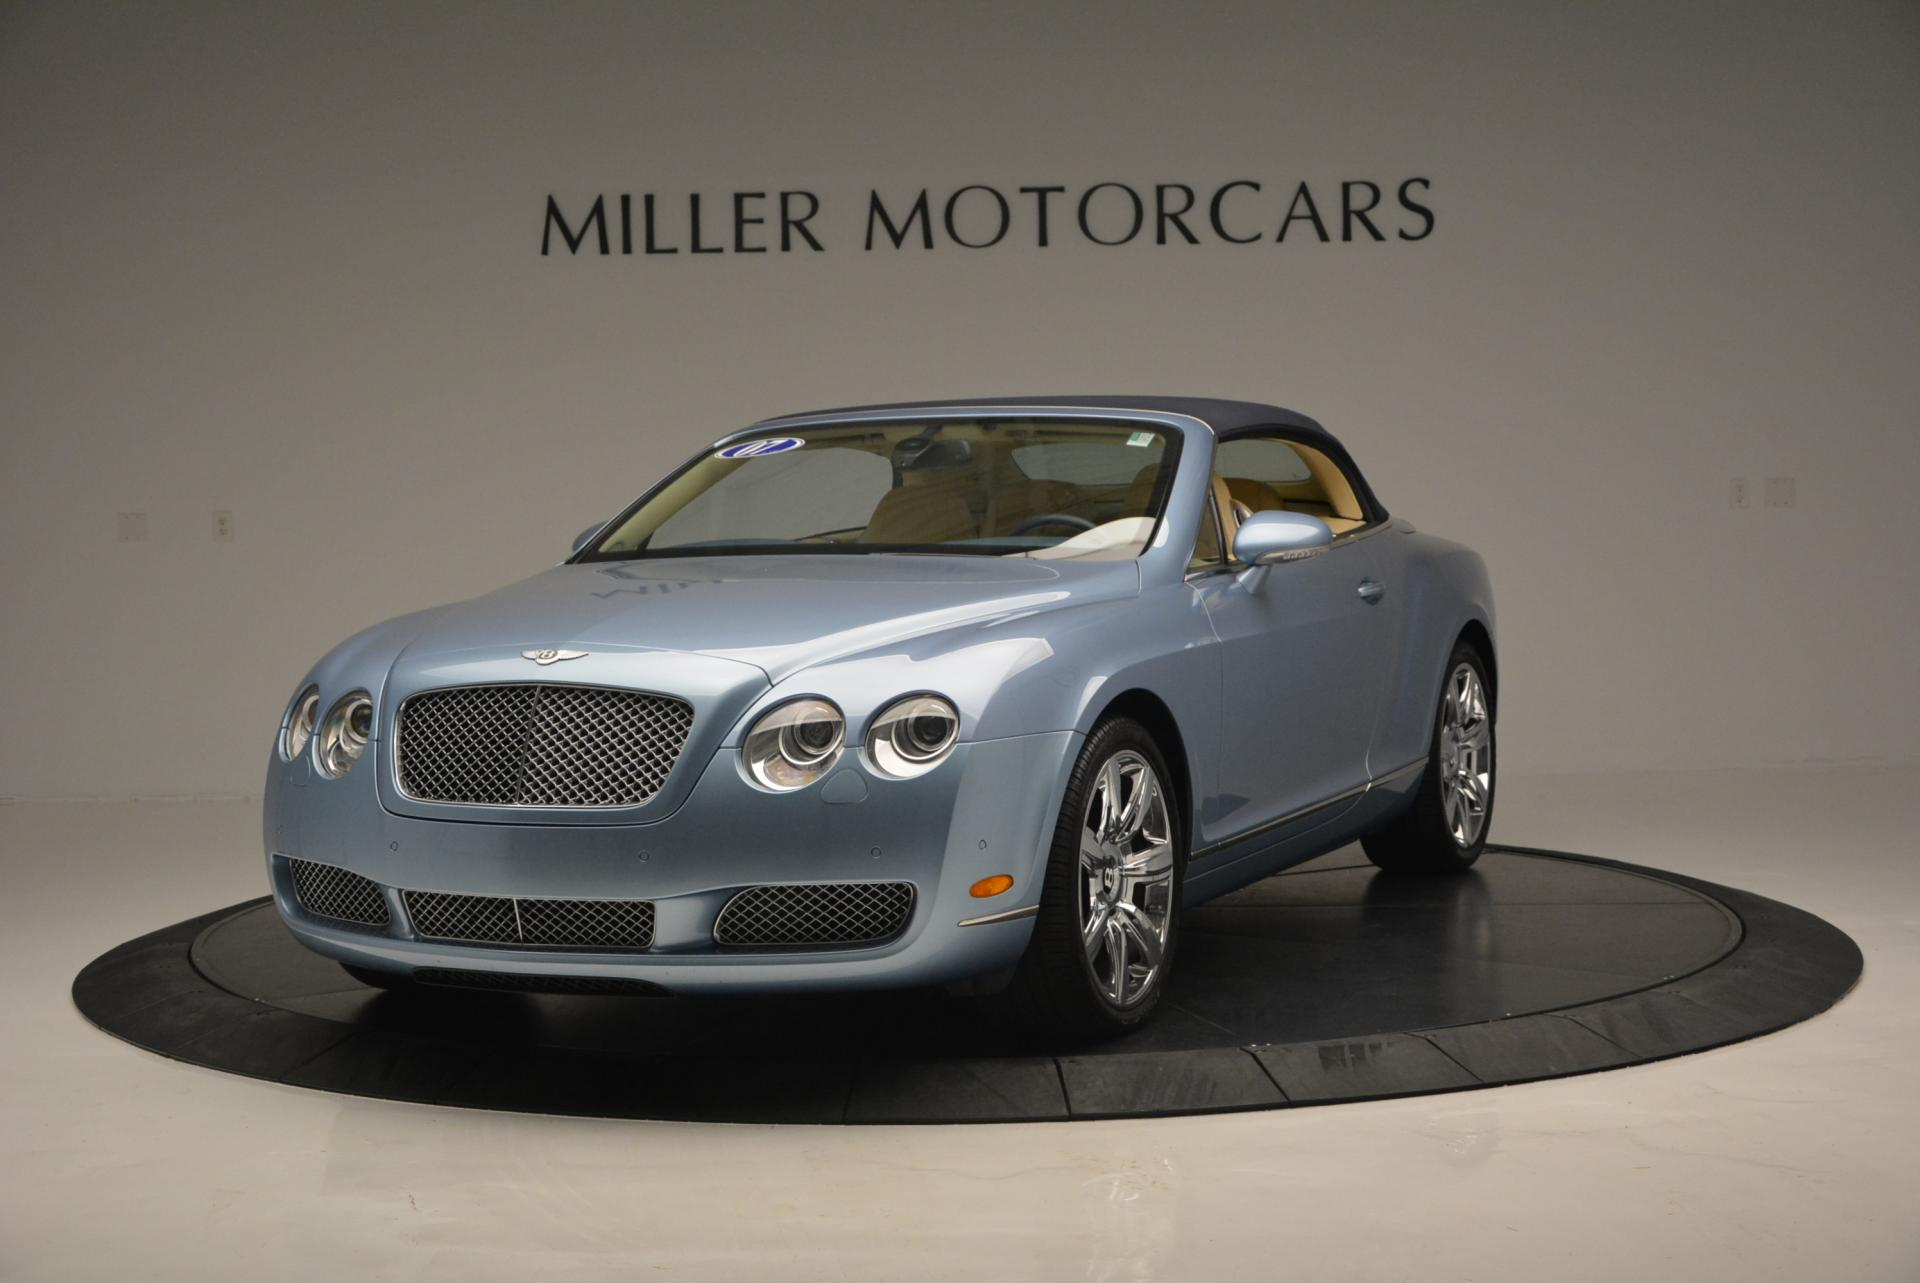 Used 2007 Bentley Continental GTC  For Sale In Westport, CT 495_p13